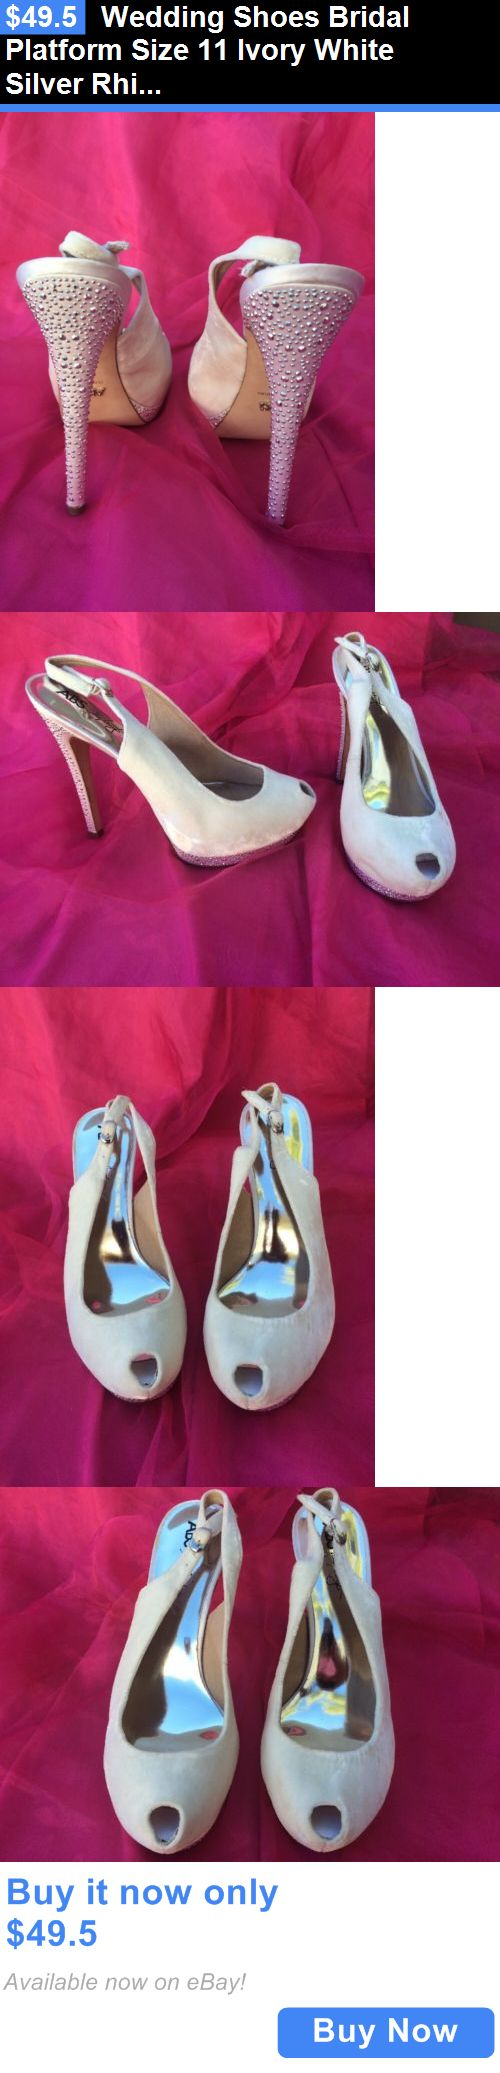 Wedding Shoes And Bridal Shoes: Wedding Shoes Bridal Platform Size 11 Ivory White Silver Rhinestone BUY IT NOW ONLY: $49.5